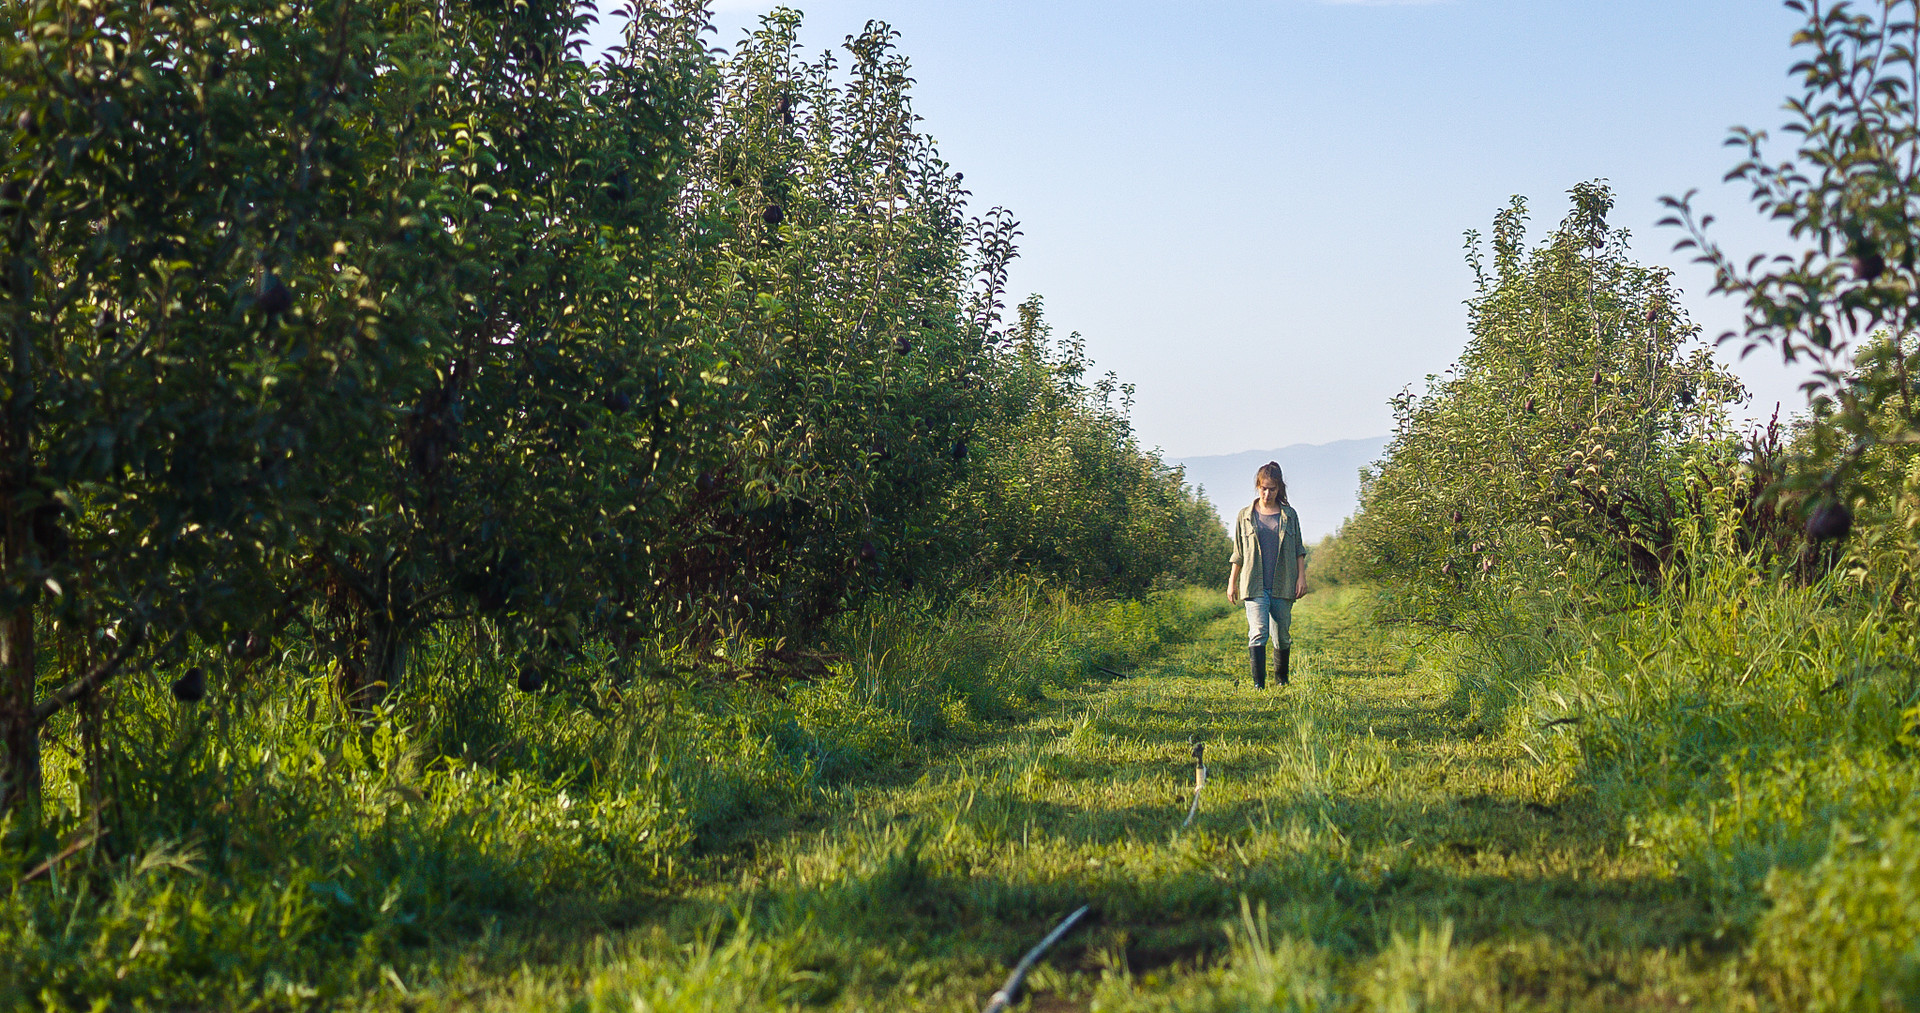 Photo 6 ANDY_WALKING_WIDE_ORCHARD_100_A_001.jpg